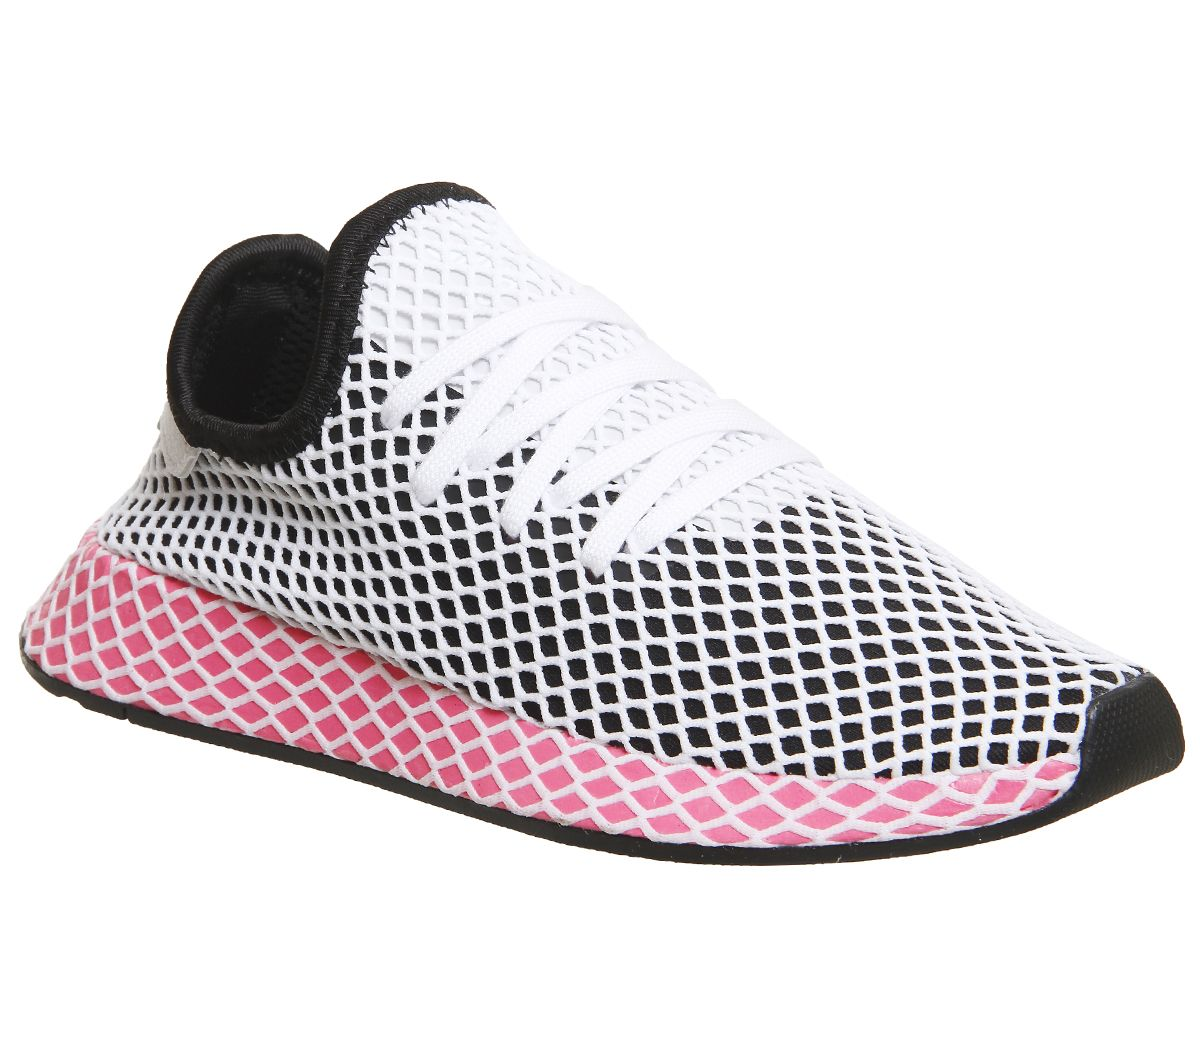 a4261a380 adidas Deerupt Trainers Core Black Chalk Pink - Unisex Sports